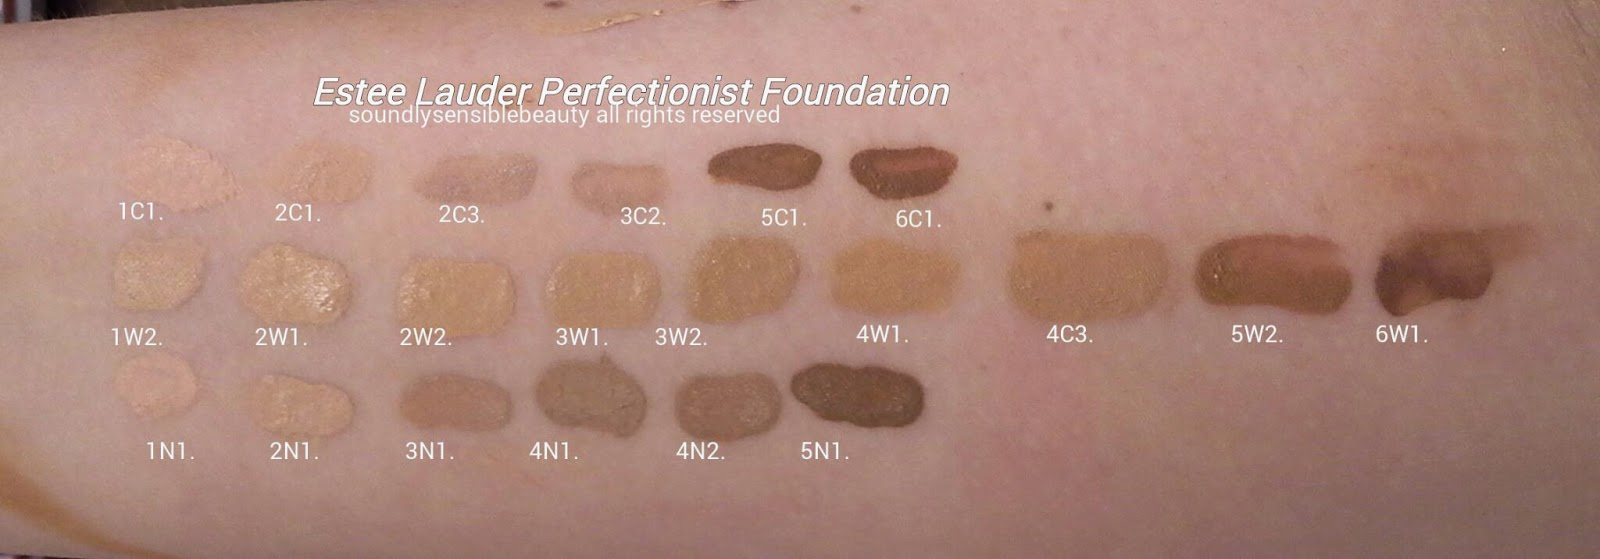 Estee Lauder Perfectionist Foundation Review Swatches Of Shades